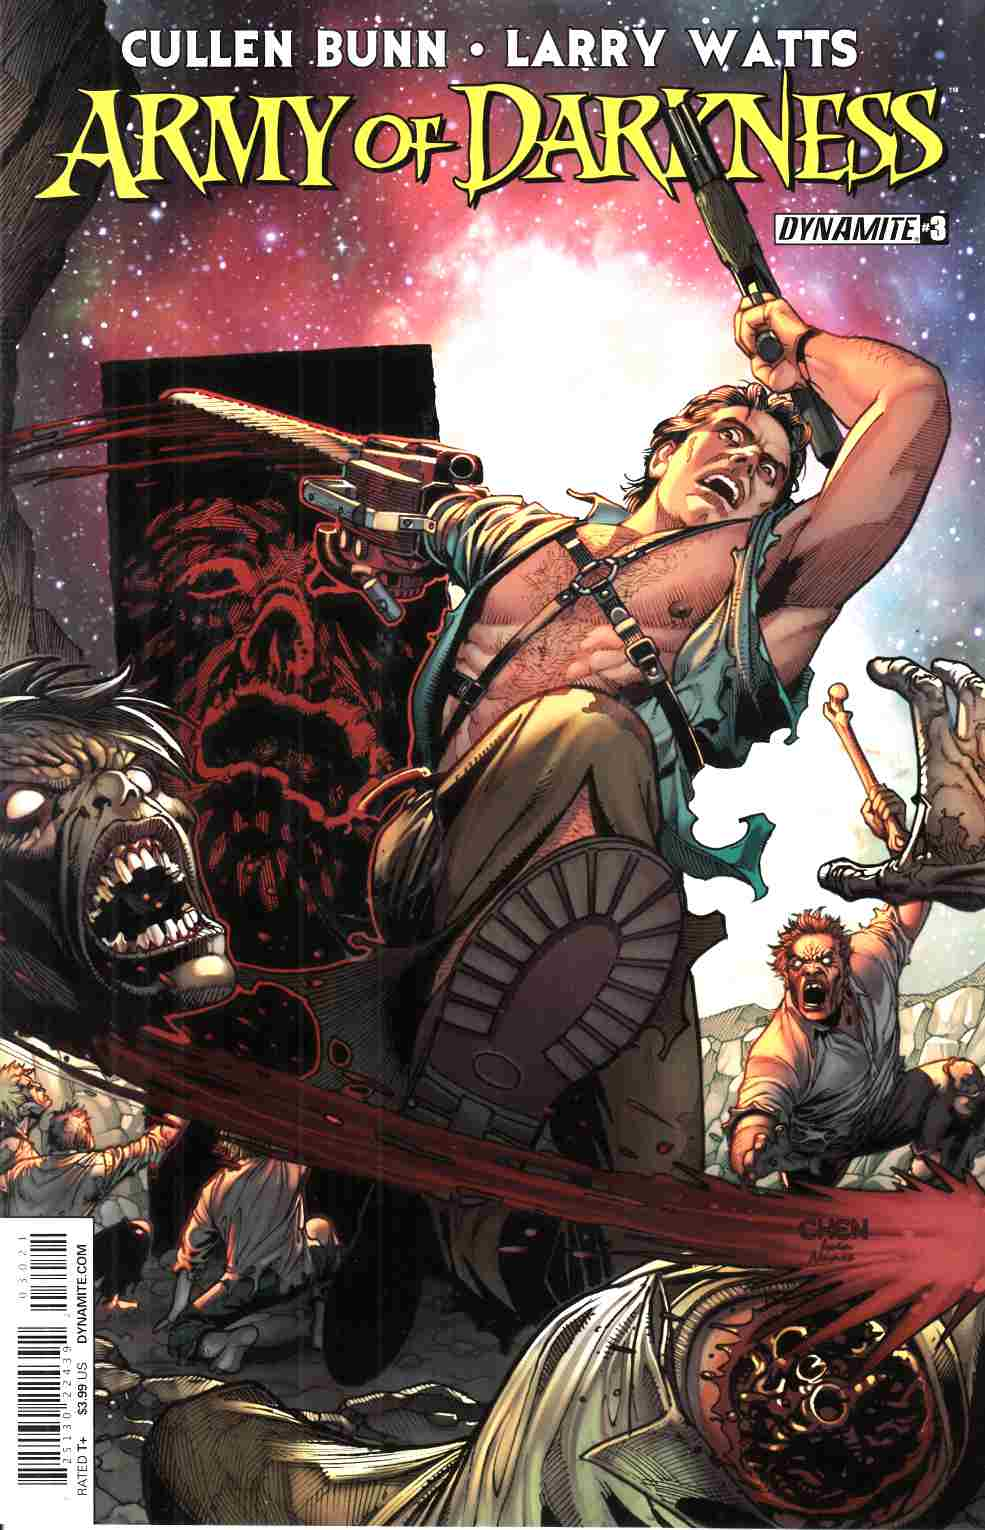 Army of Darkness Vol 4 #3 Cover B- Chen [Dynamite Comic] THUMBNAIL